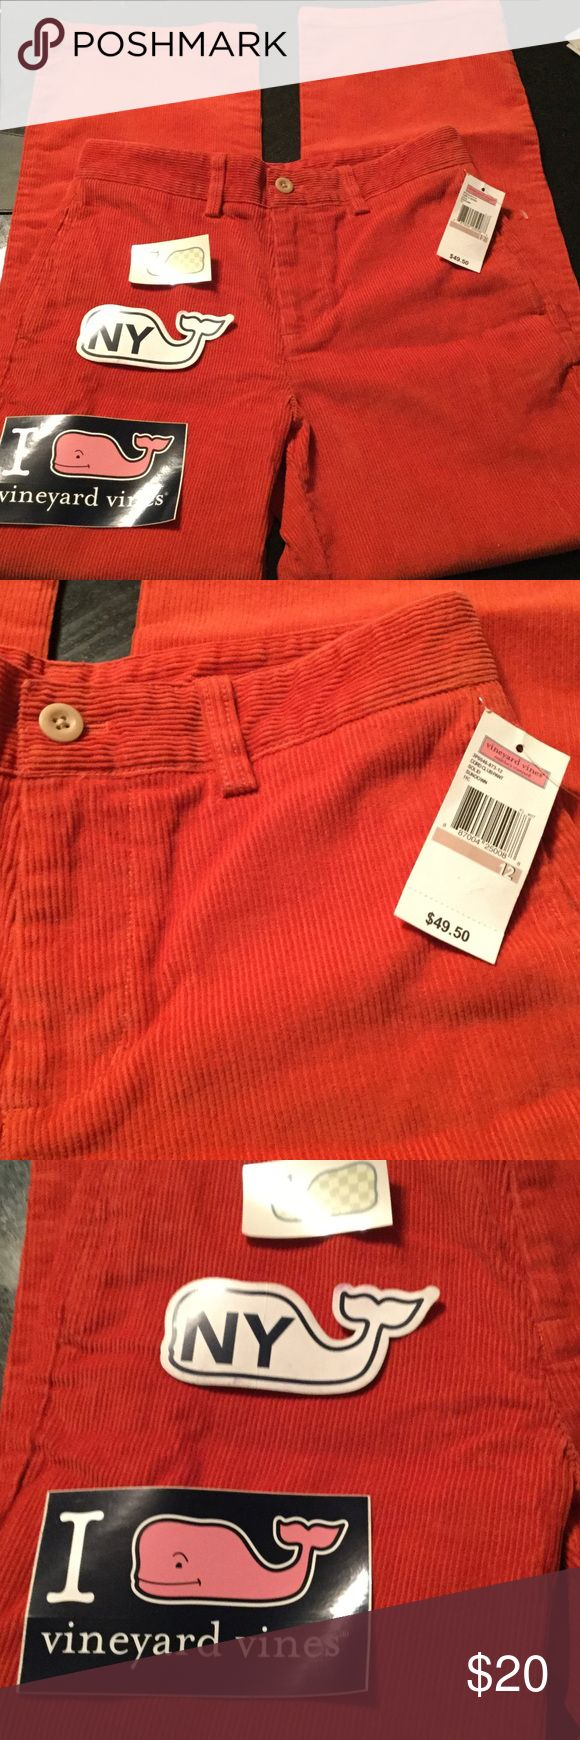 Vineyard Vines girls club pants Color is marked sundown. Club pants. Size 12. Stickers and tattoo included. Vineyard Vines Bottoms Casual